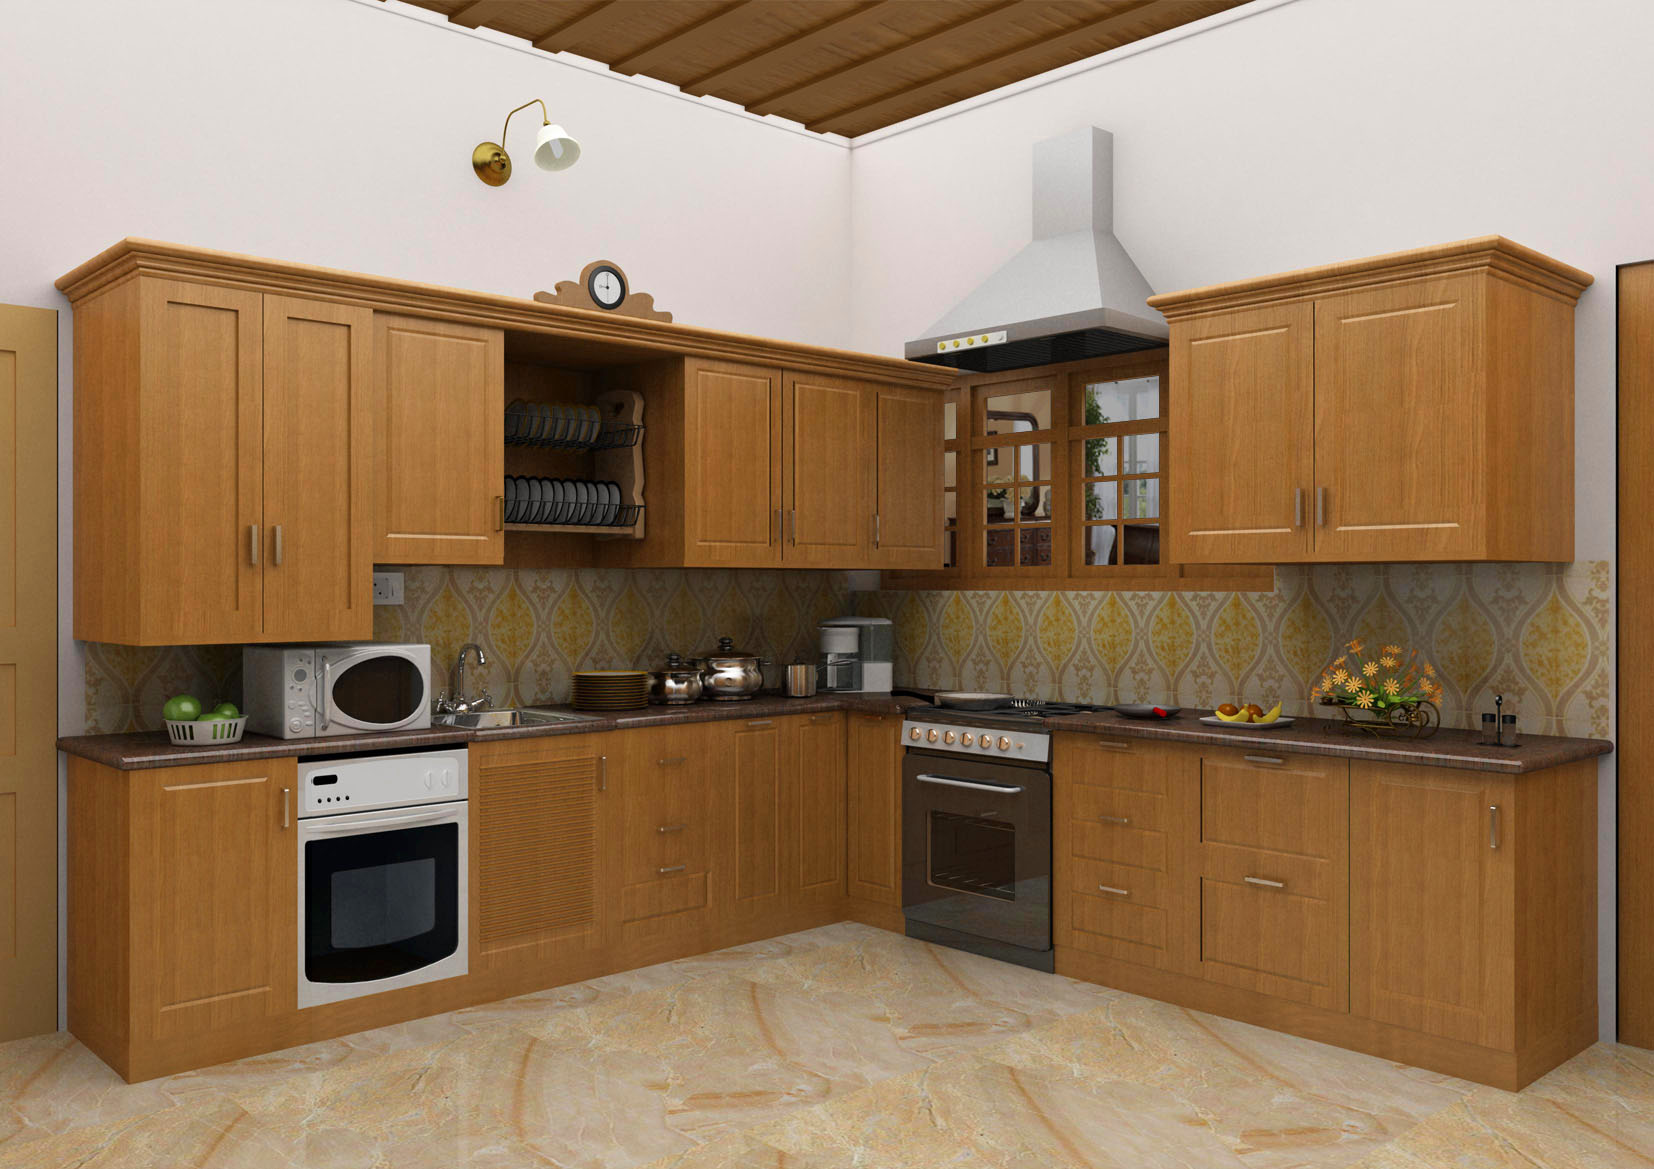 Kitchen-as-per-vastu